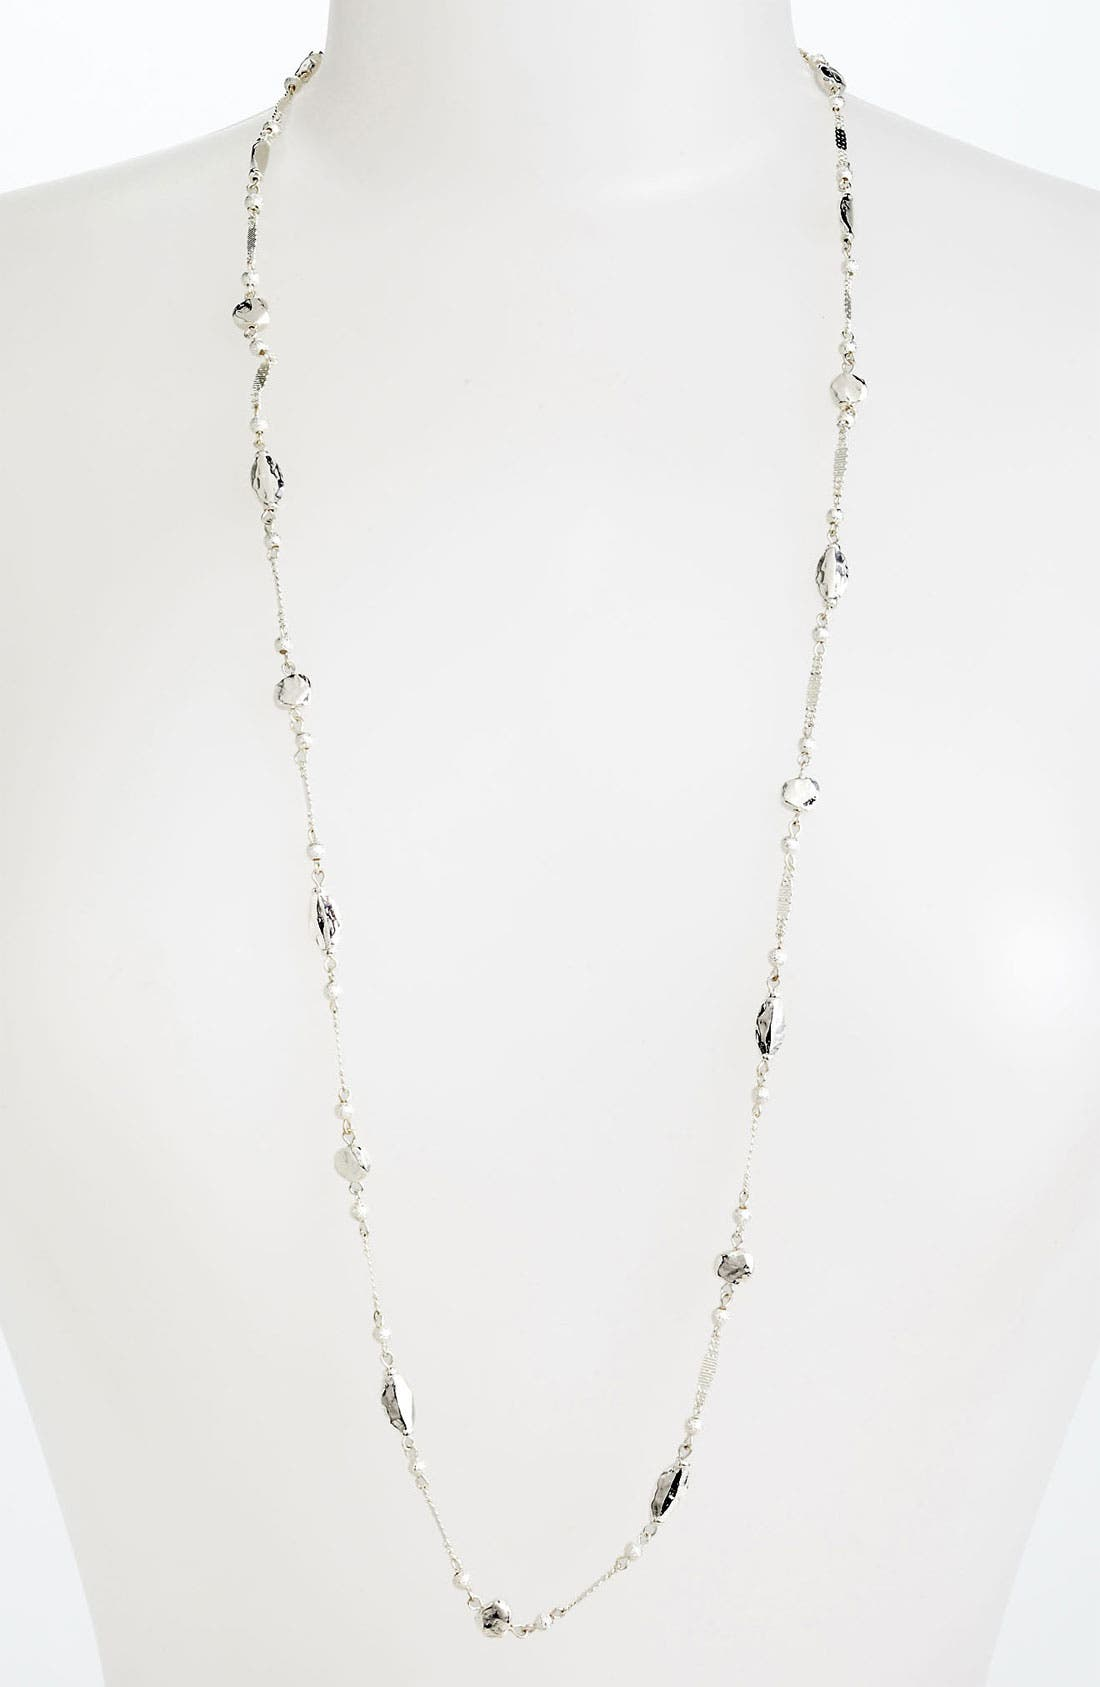 NORDSTROM,                             'Sand Dollar' Long Station Necklace,                             Main thumbnail 1, color,                             040